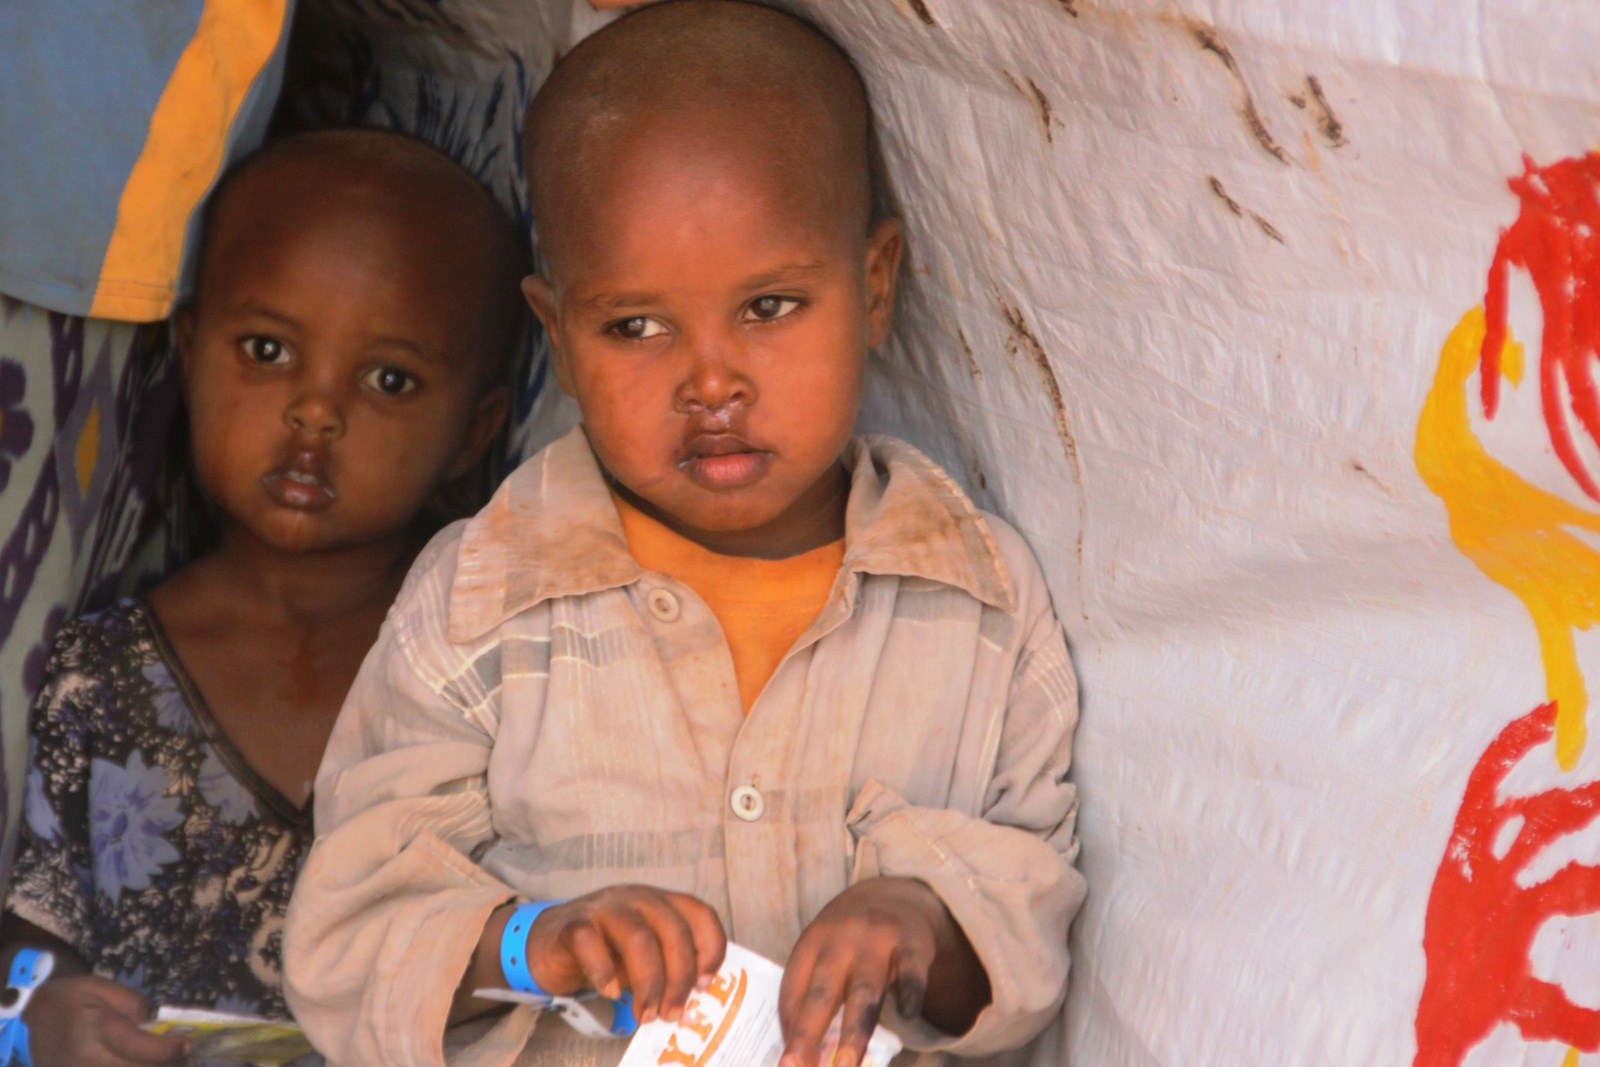 Children in Dadaab